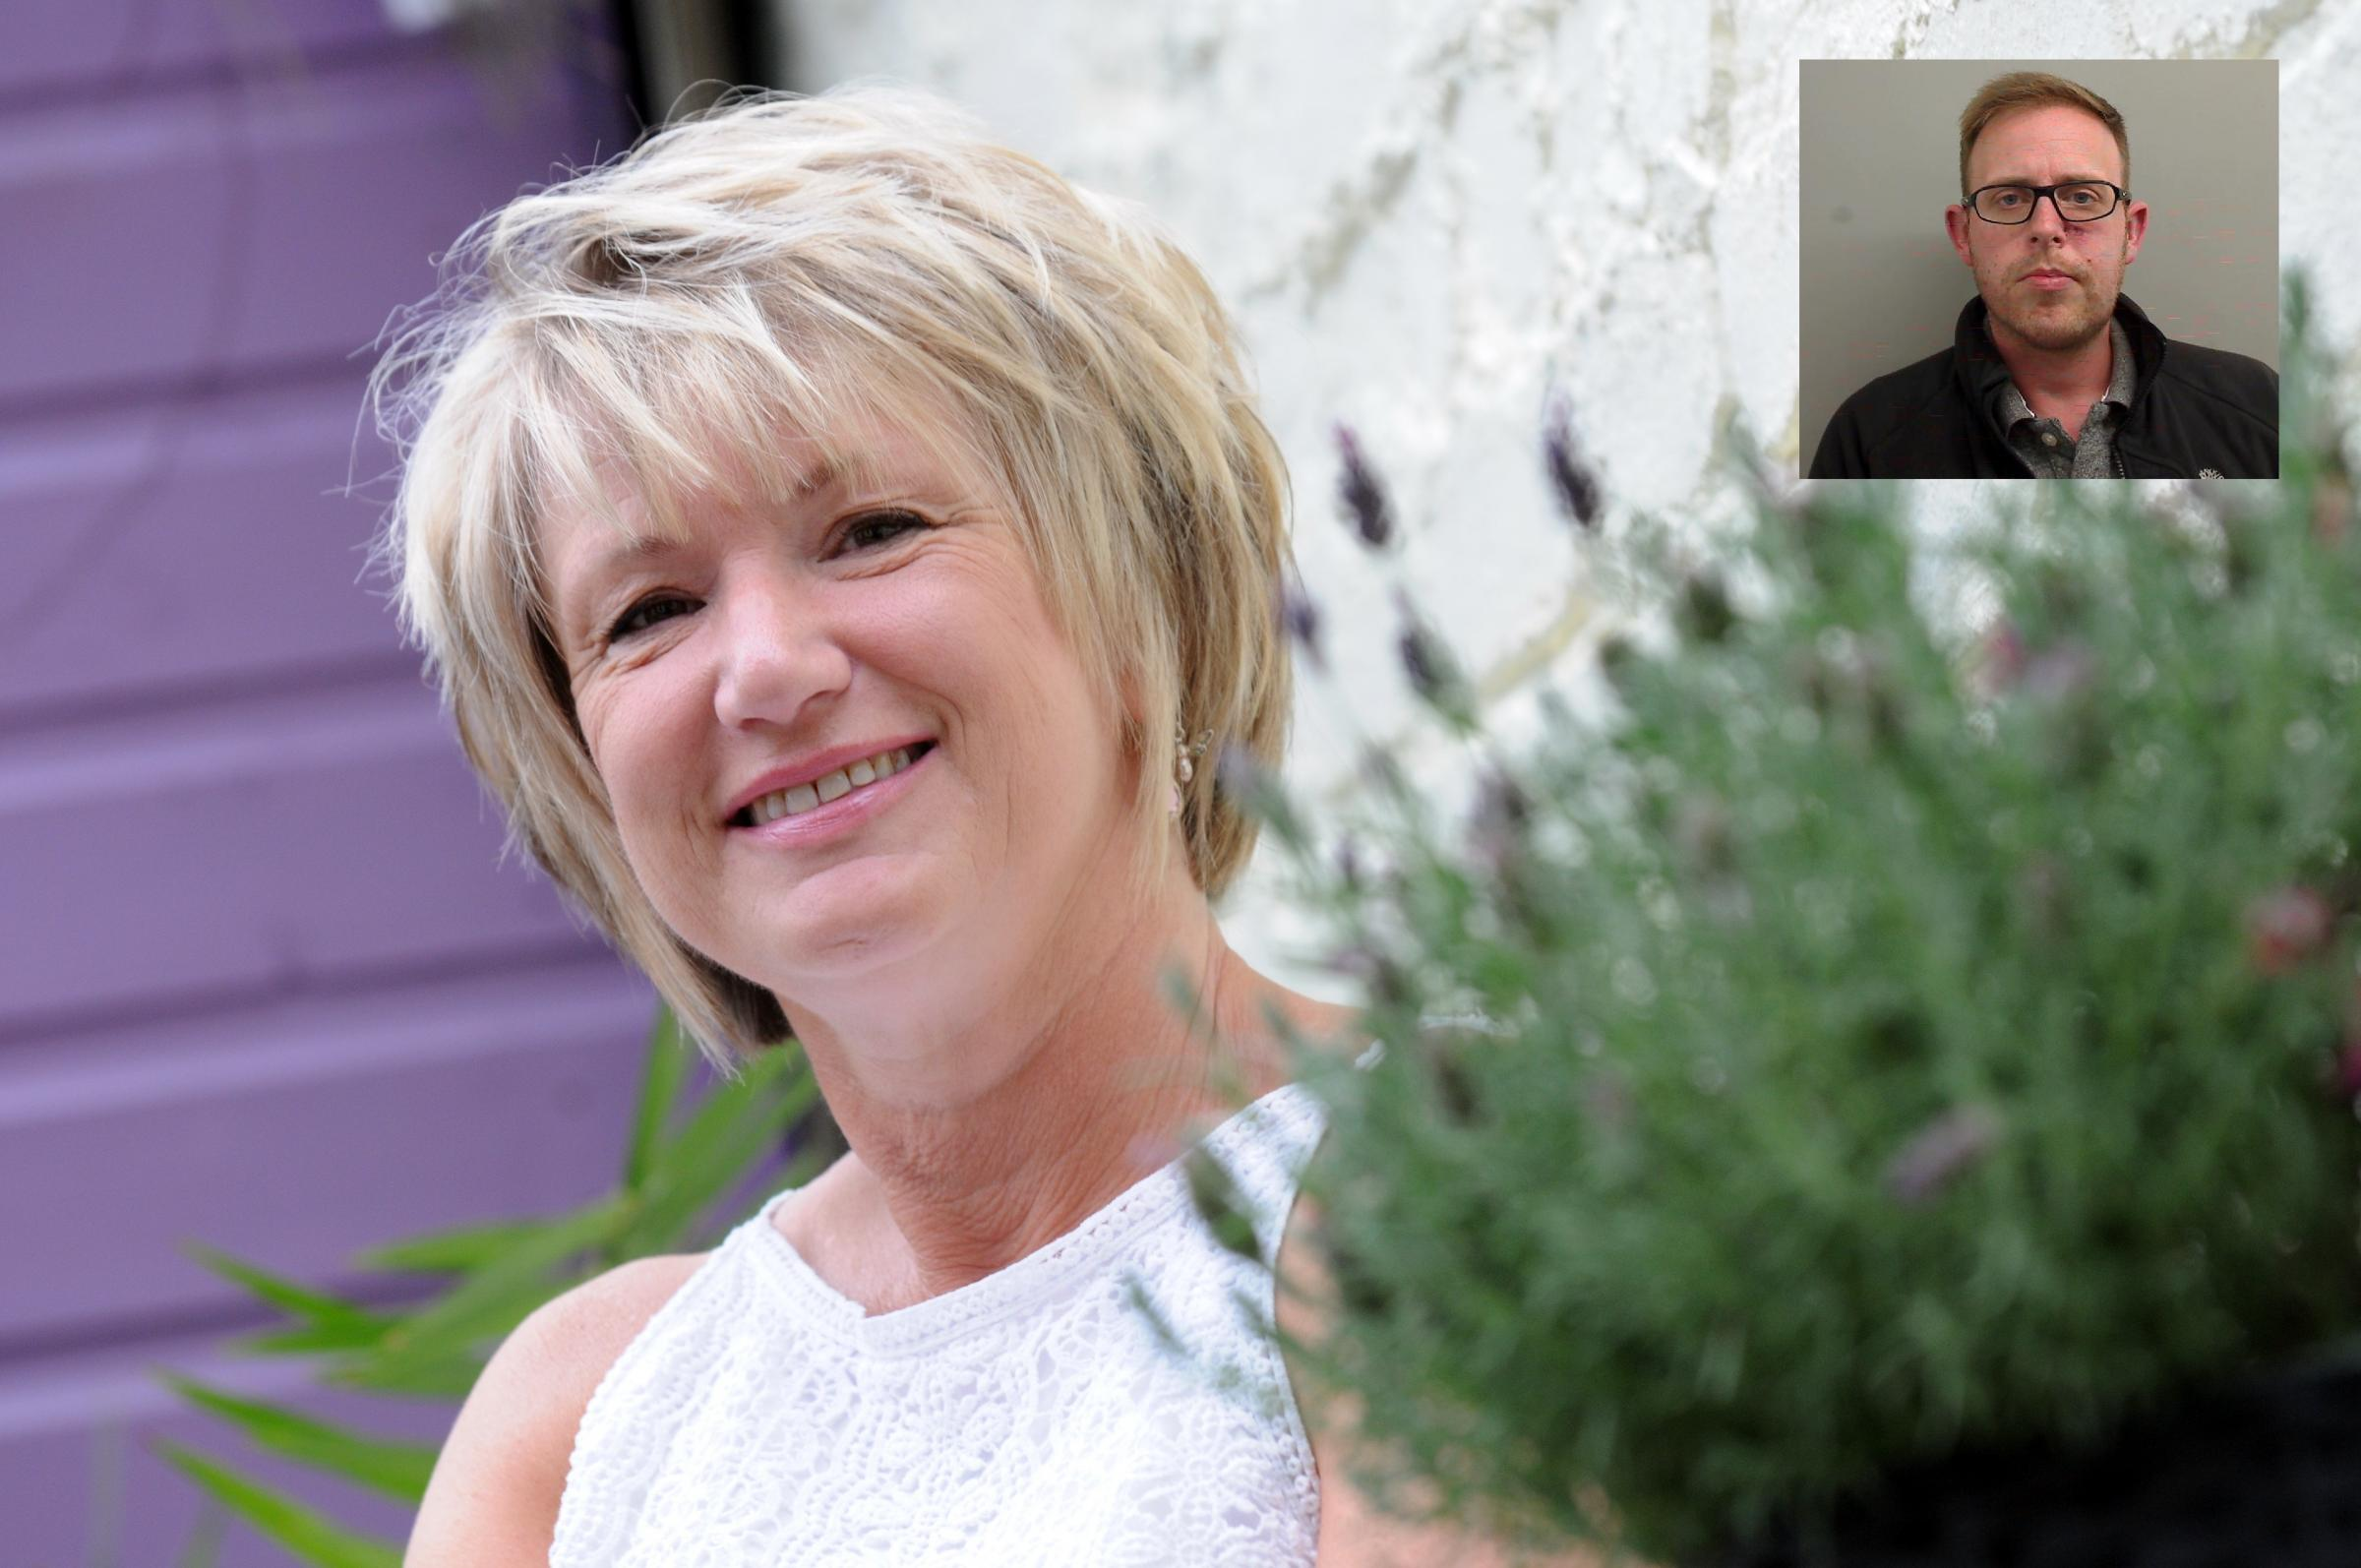 Helen Gundry has spoken of her shock after her estranged husband Daniel was jailed for bigamy.